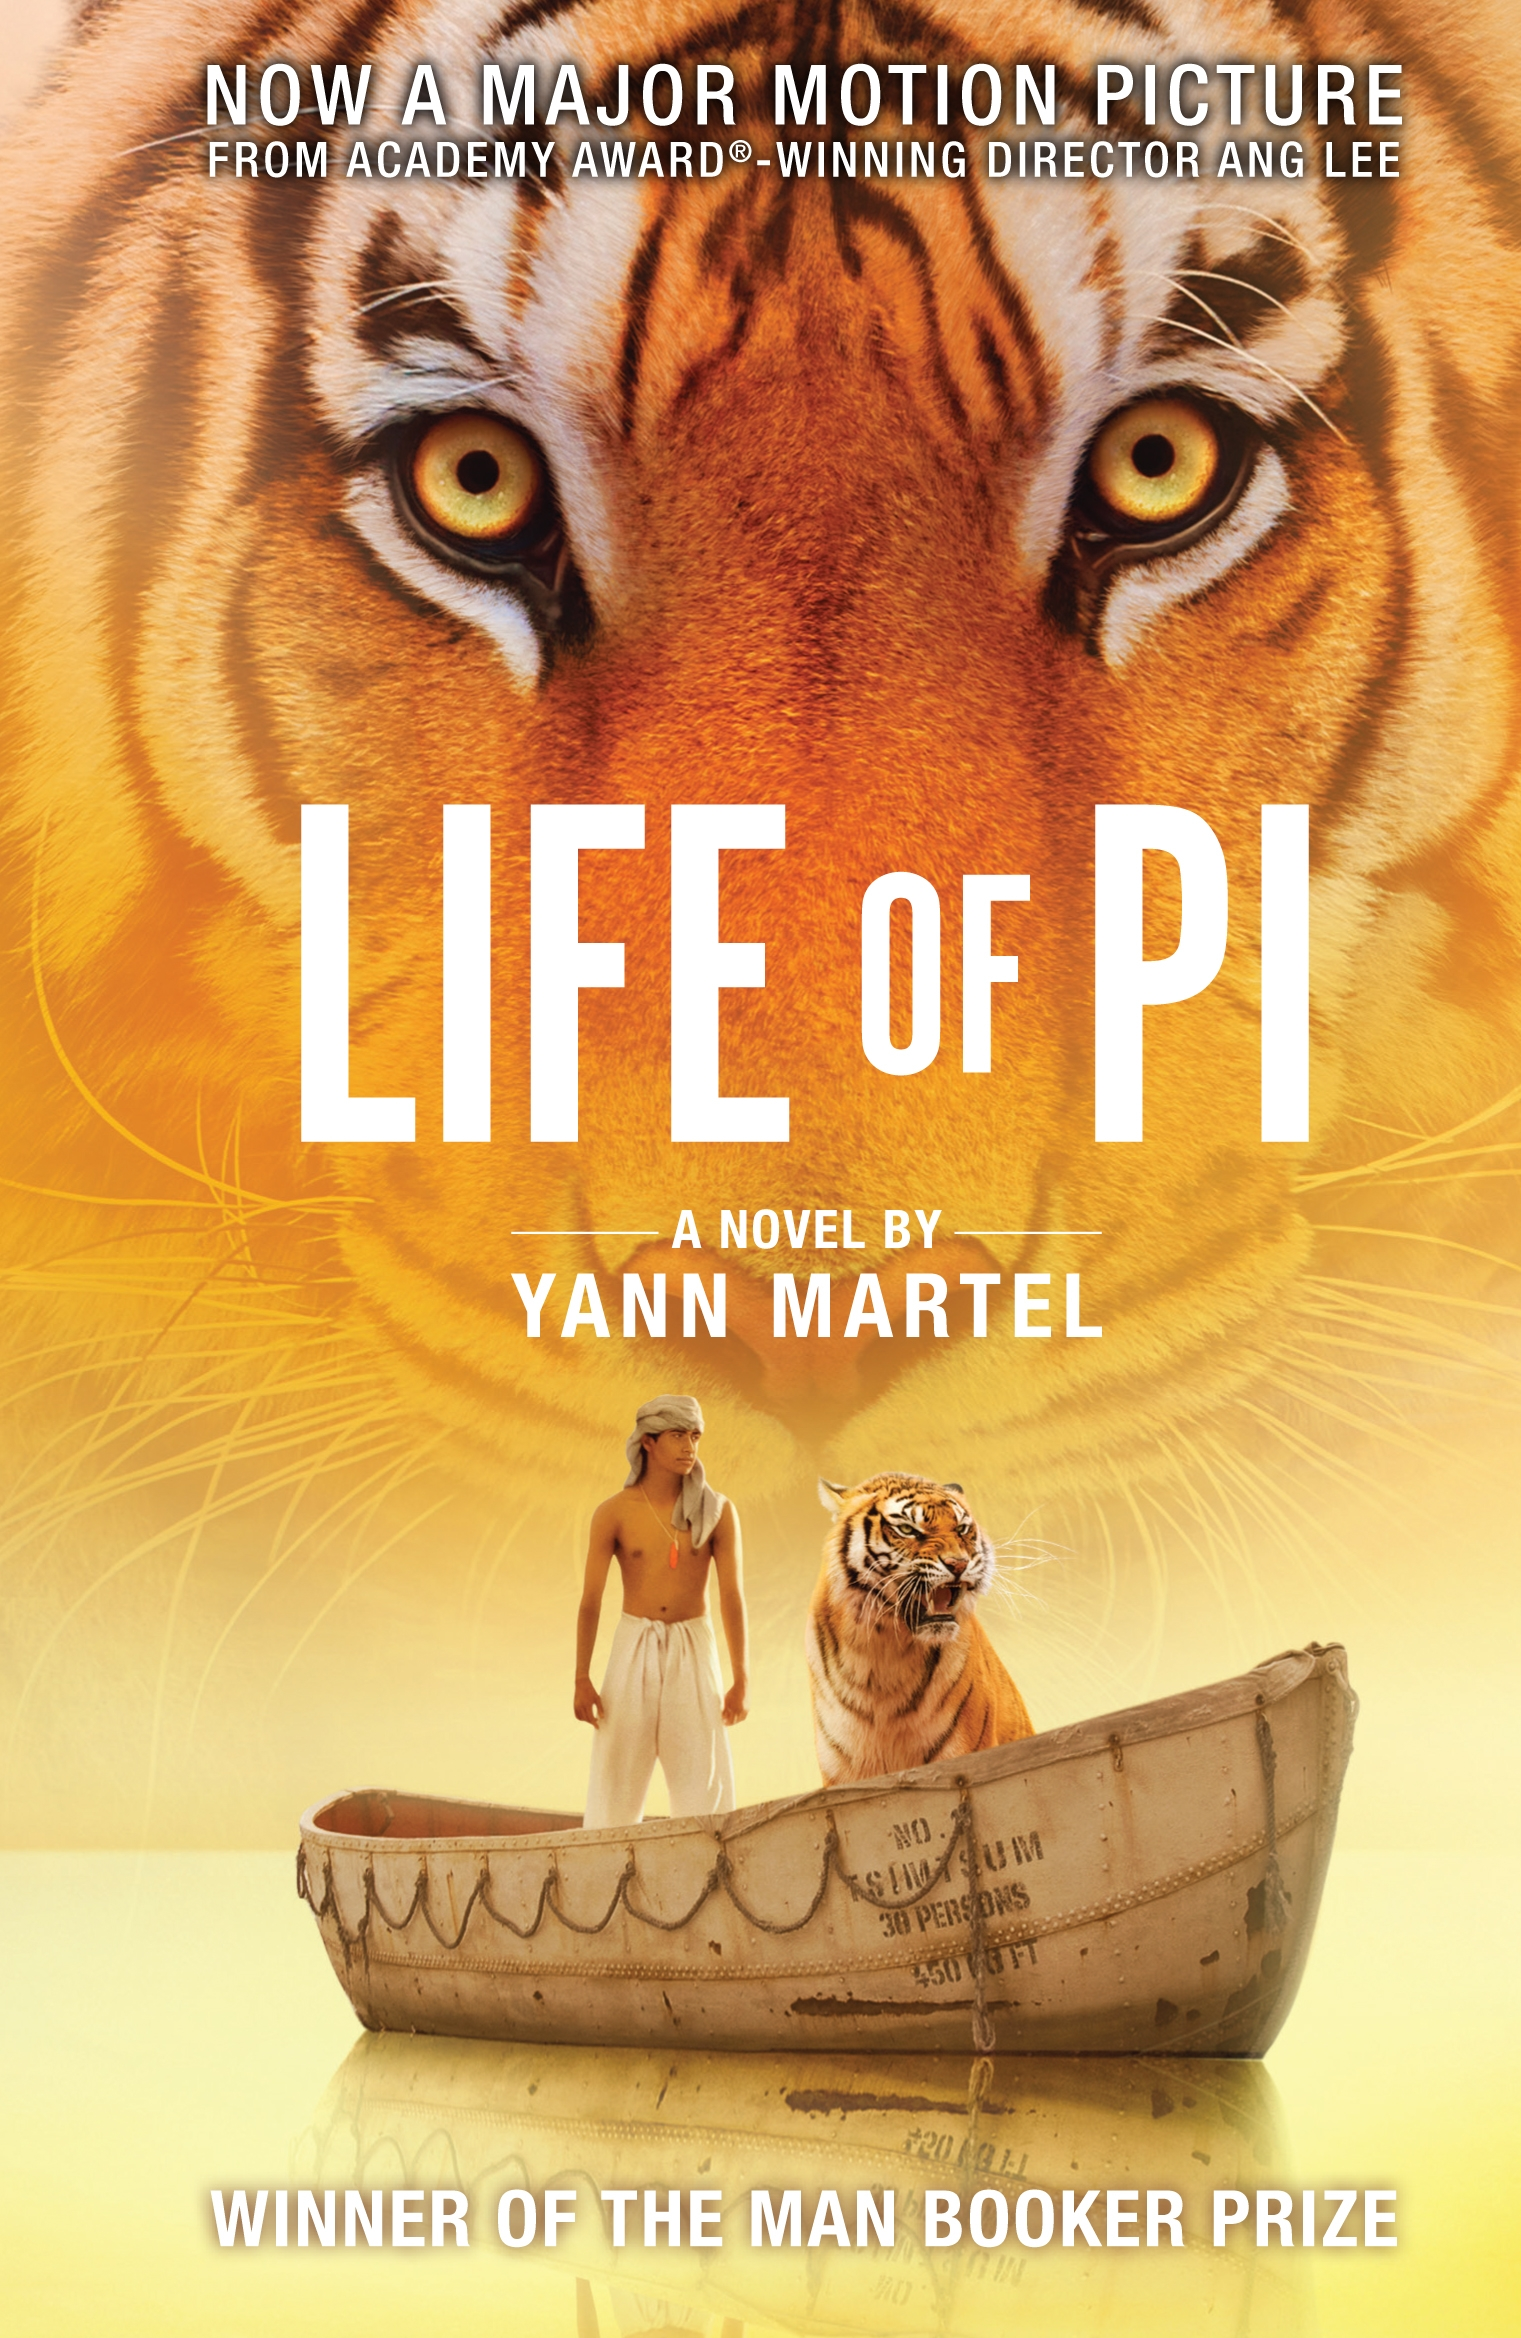 Life of pi novel review